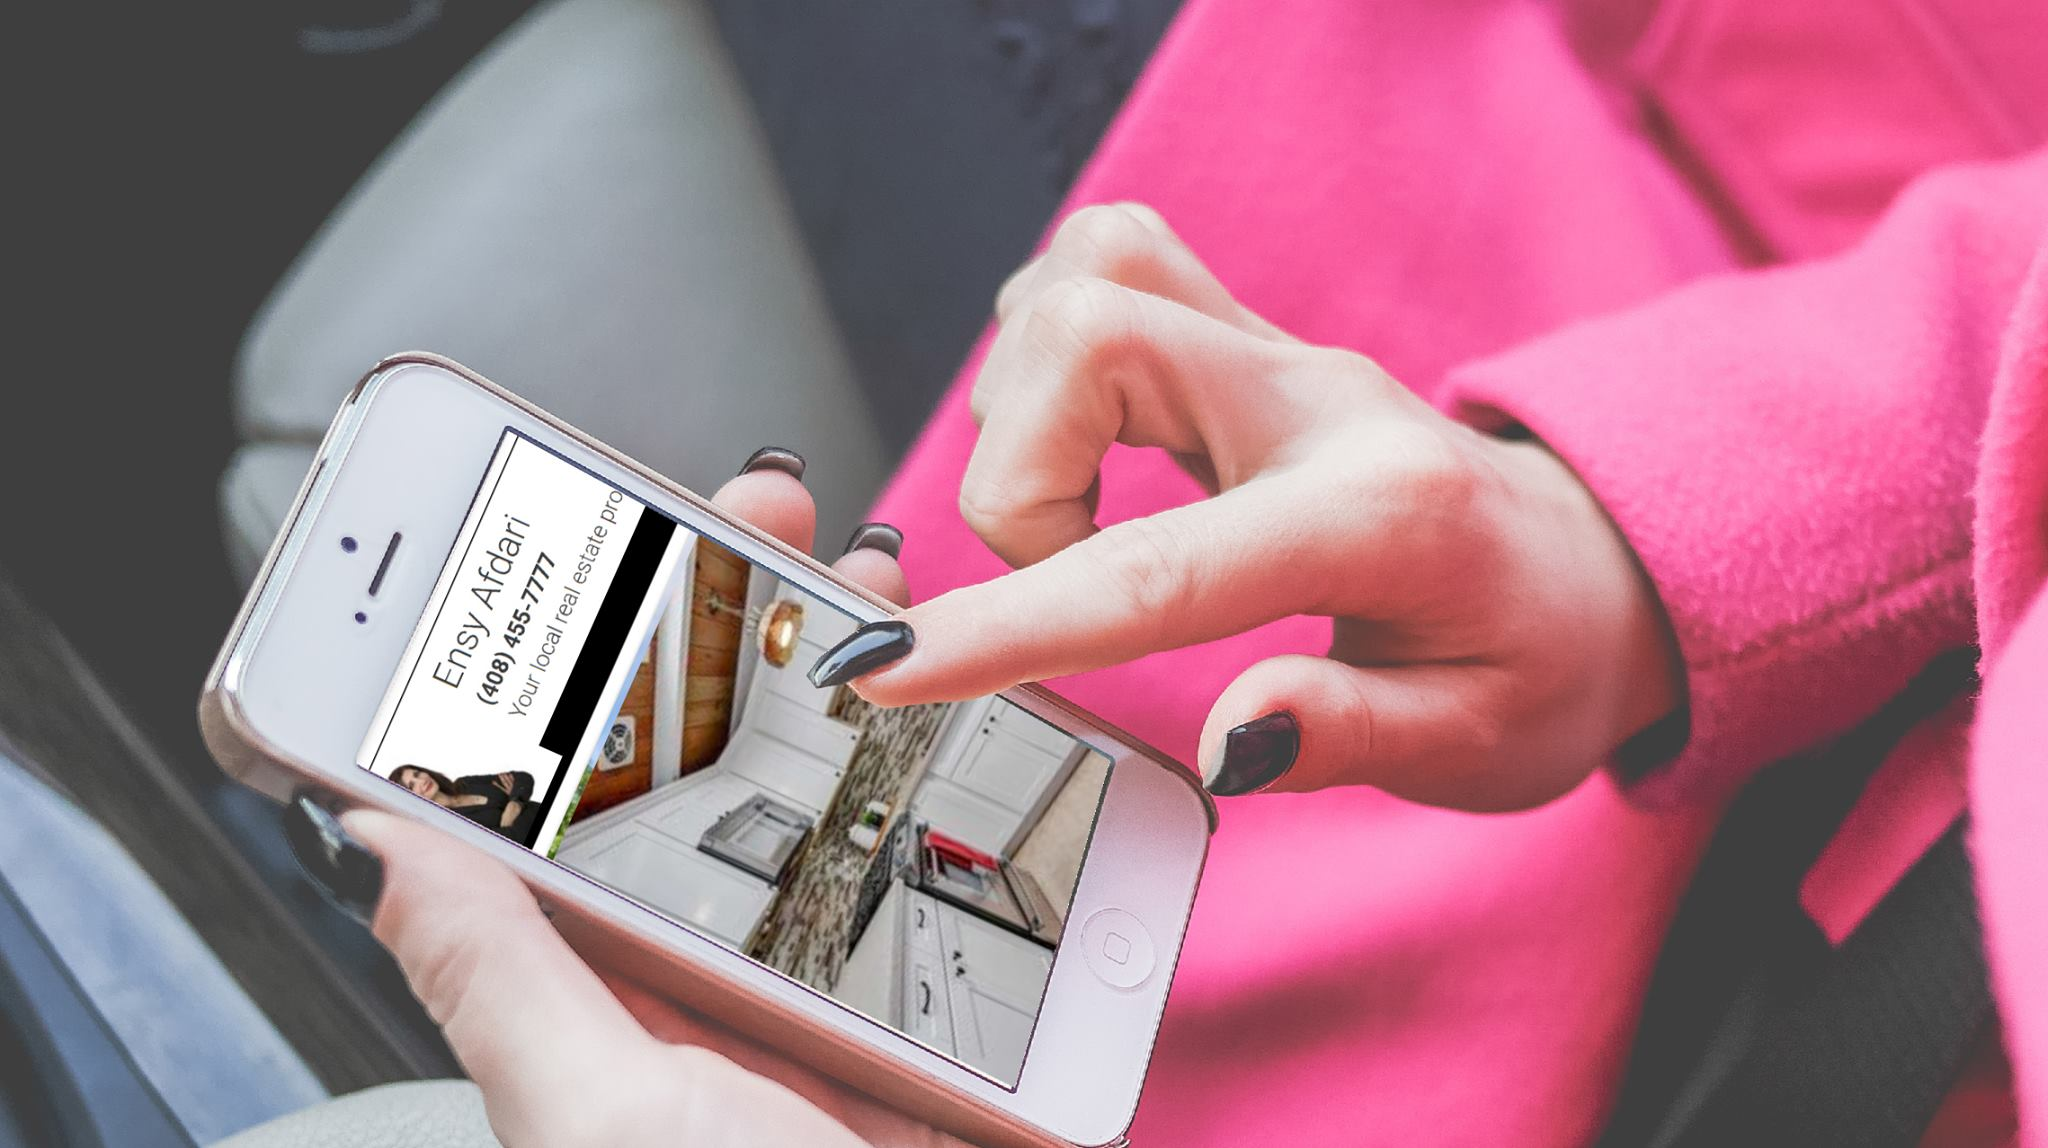 Luxury Real Estate Agent For Silicon Valley On Mobile Phone Screen